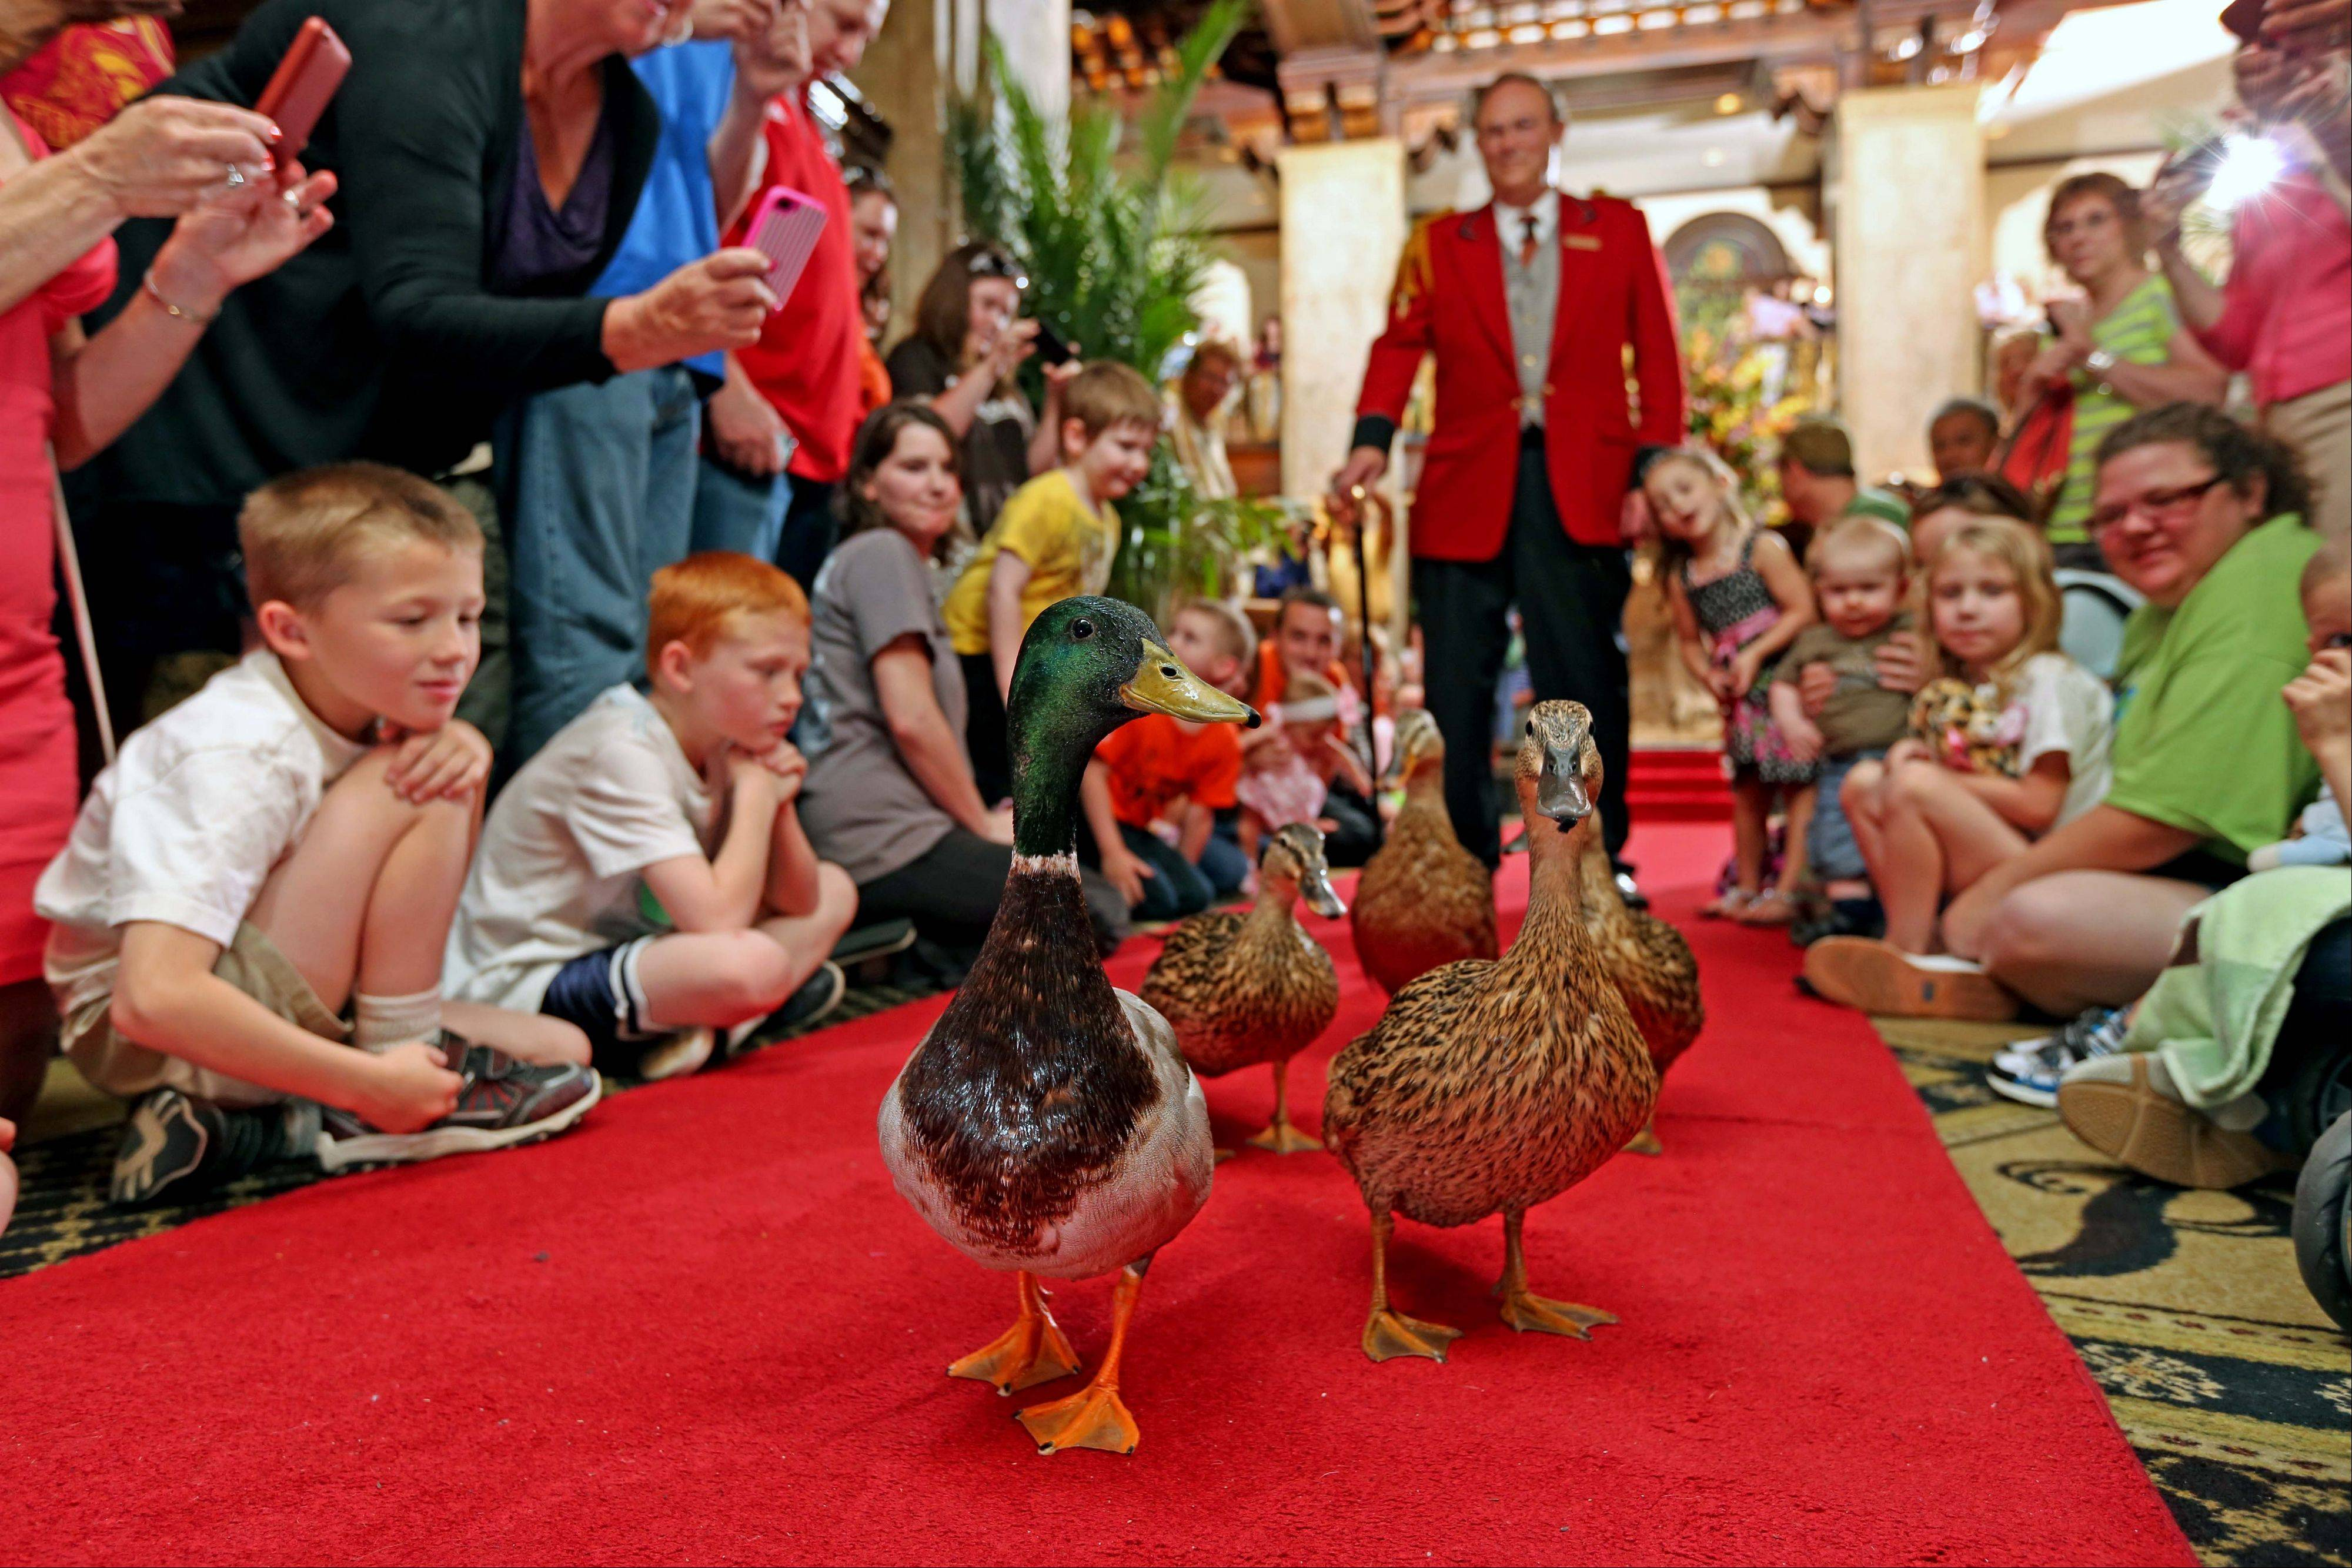 Ducks live in the Peabody Memphis Hotel and visitors are welcome to stop by to watch their twice-a-day parades through the lobby.